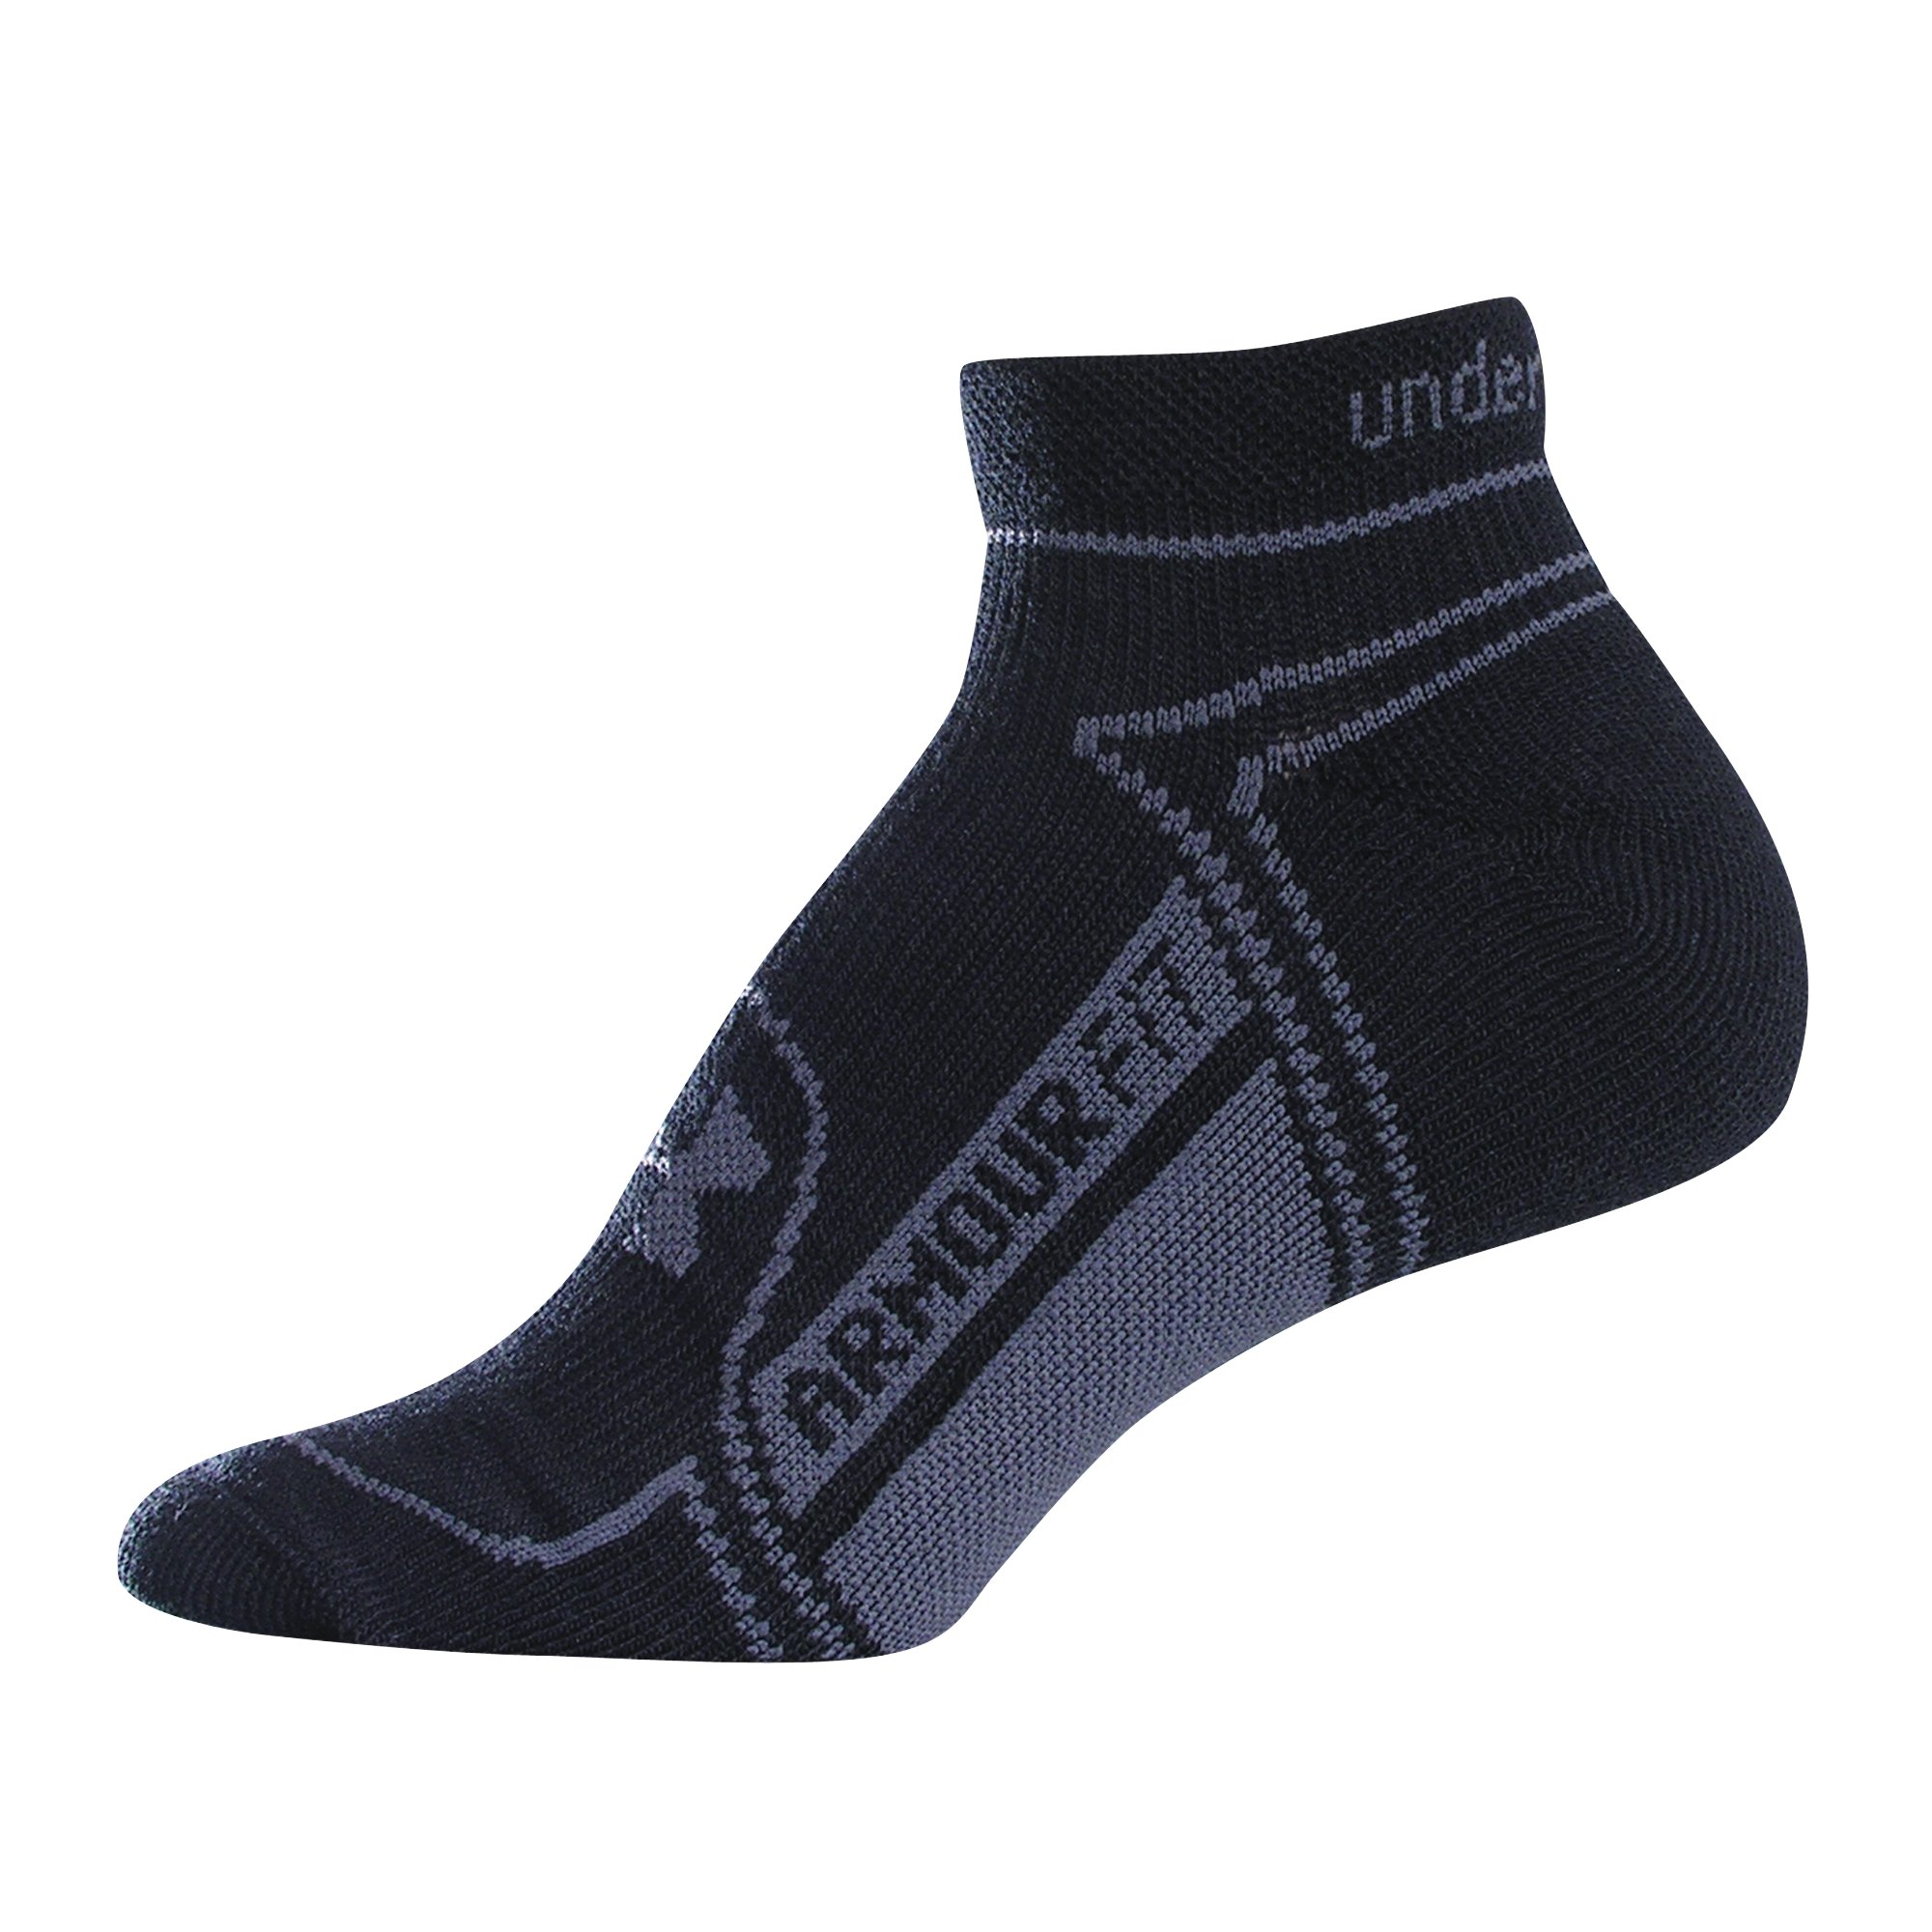 Women's Rush No Show Socks 2-Pack, Black